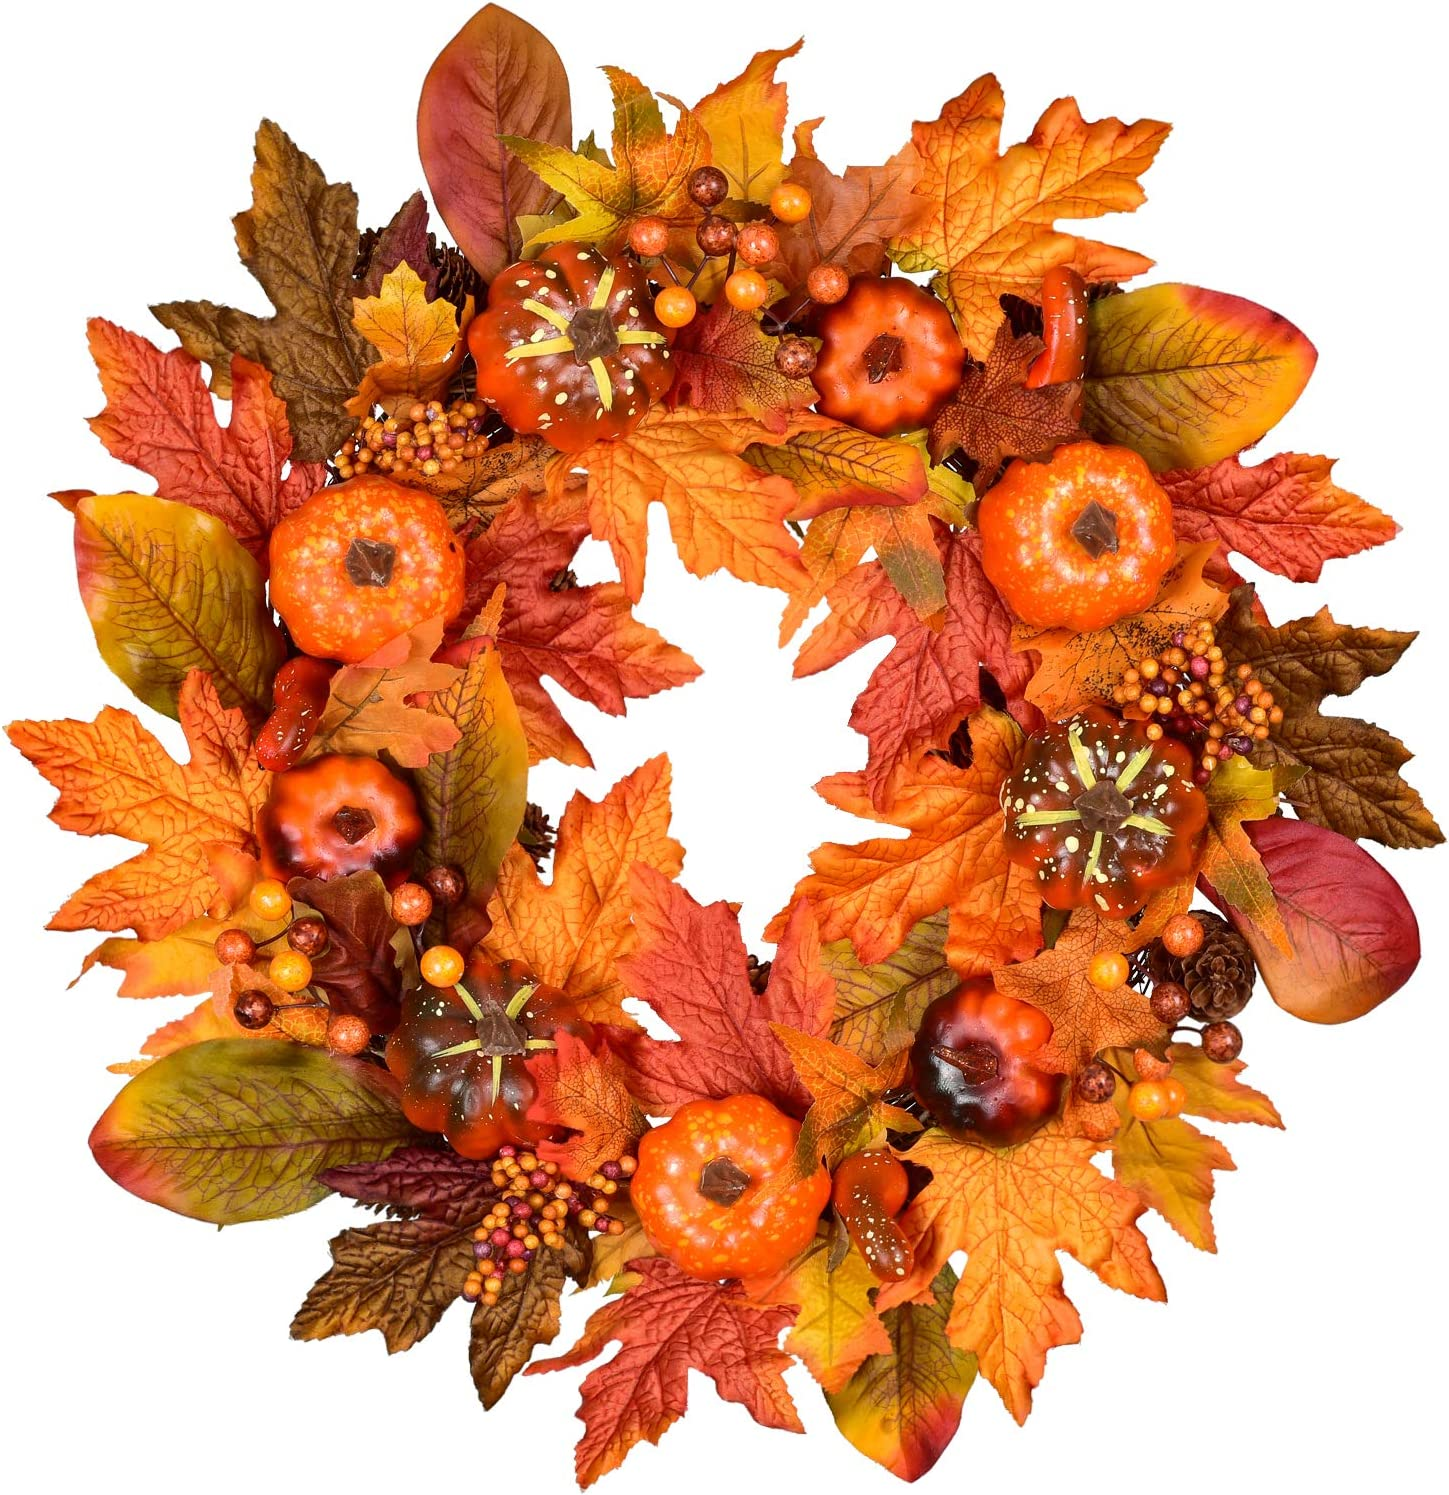 DearHouse Artificial Fall Wreath Red Berry Wreath,18 inch Fall Maple Leaf Wreath for Front Door Fall Decorations